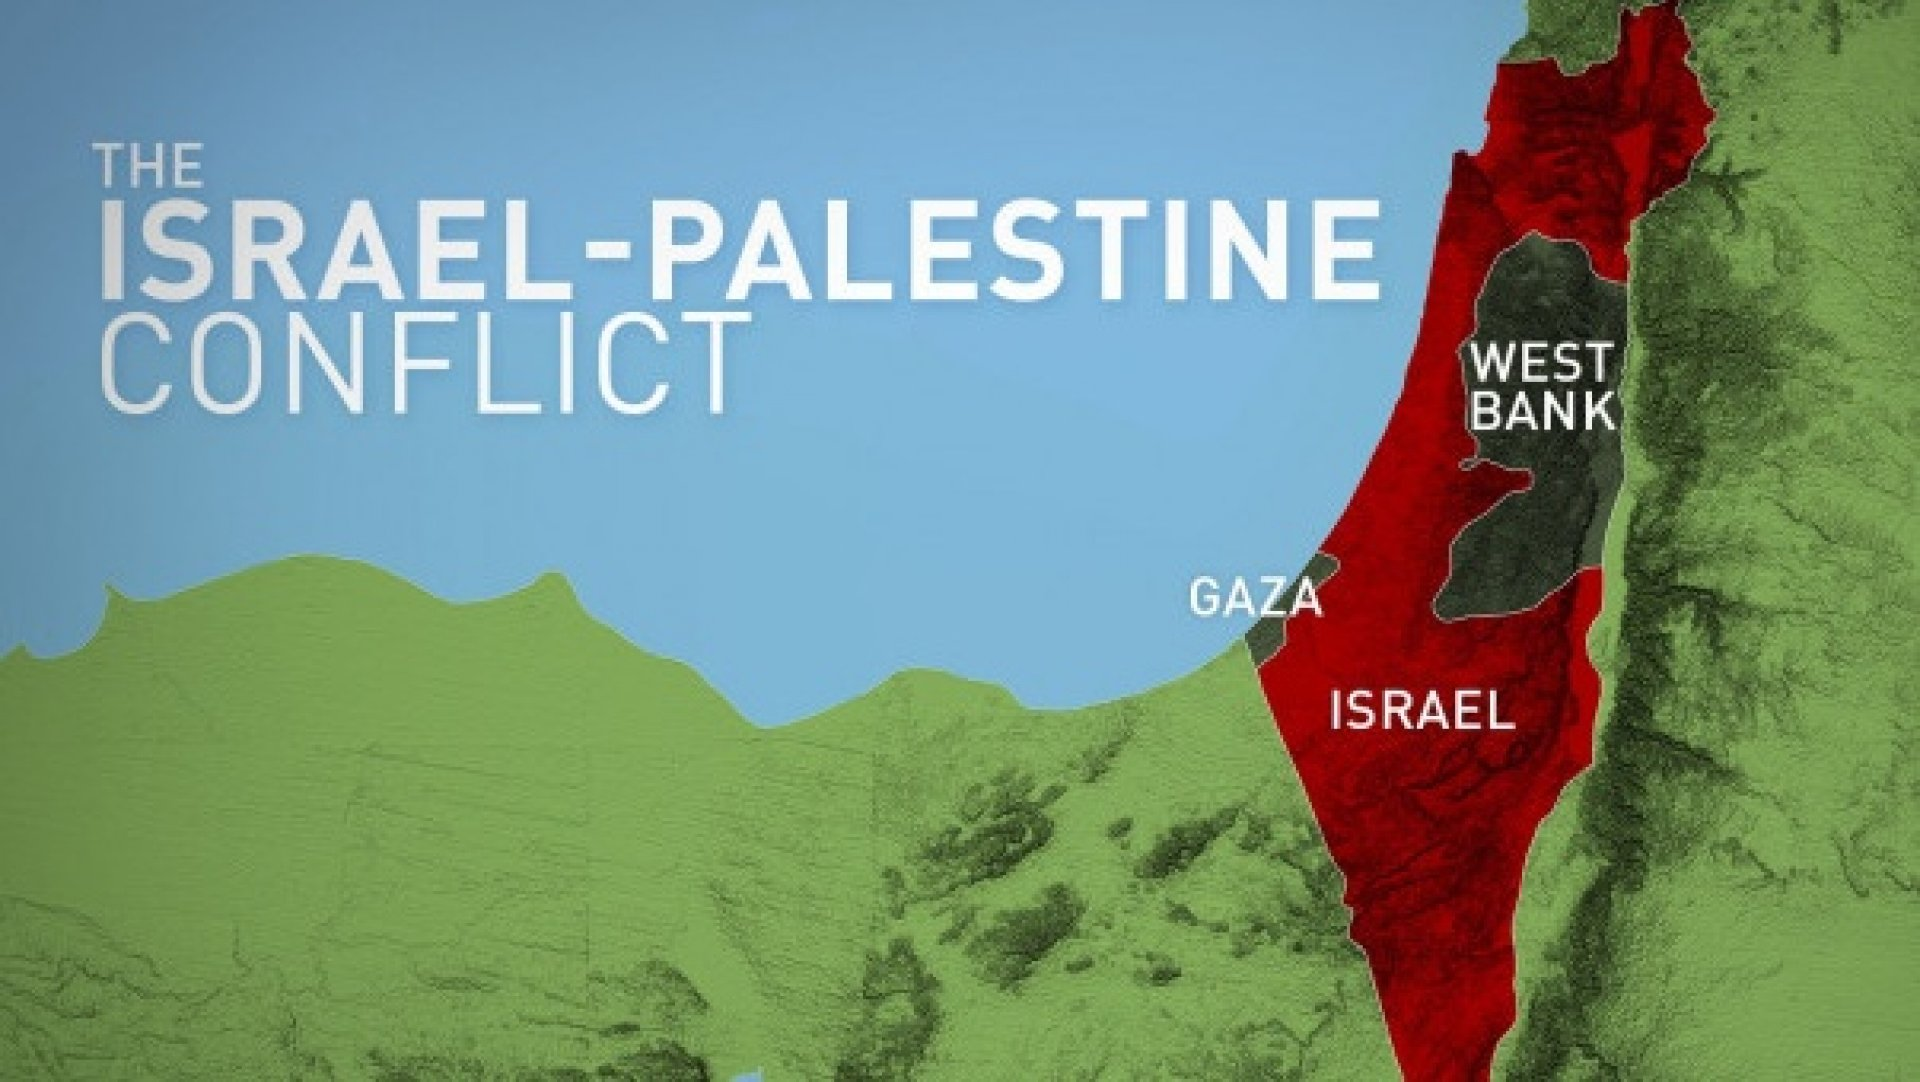 the israel palestine conflict All the latest breaking news on israeli-palestinian conflict browse the independent's complete collection of articles and commentary on israeli-palestinian conflict.